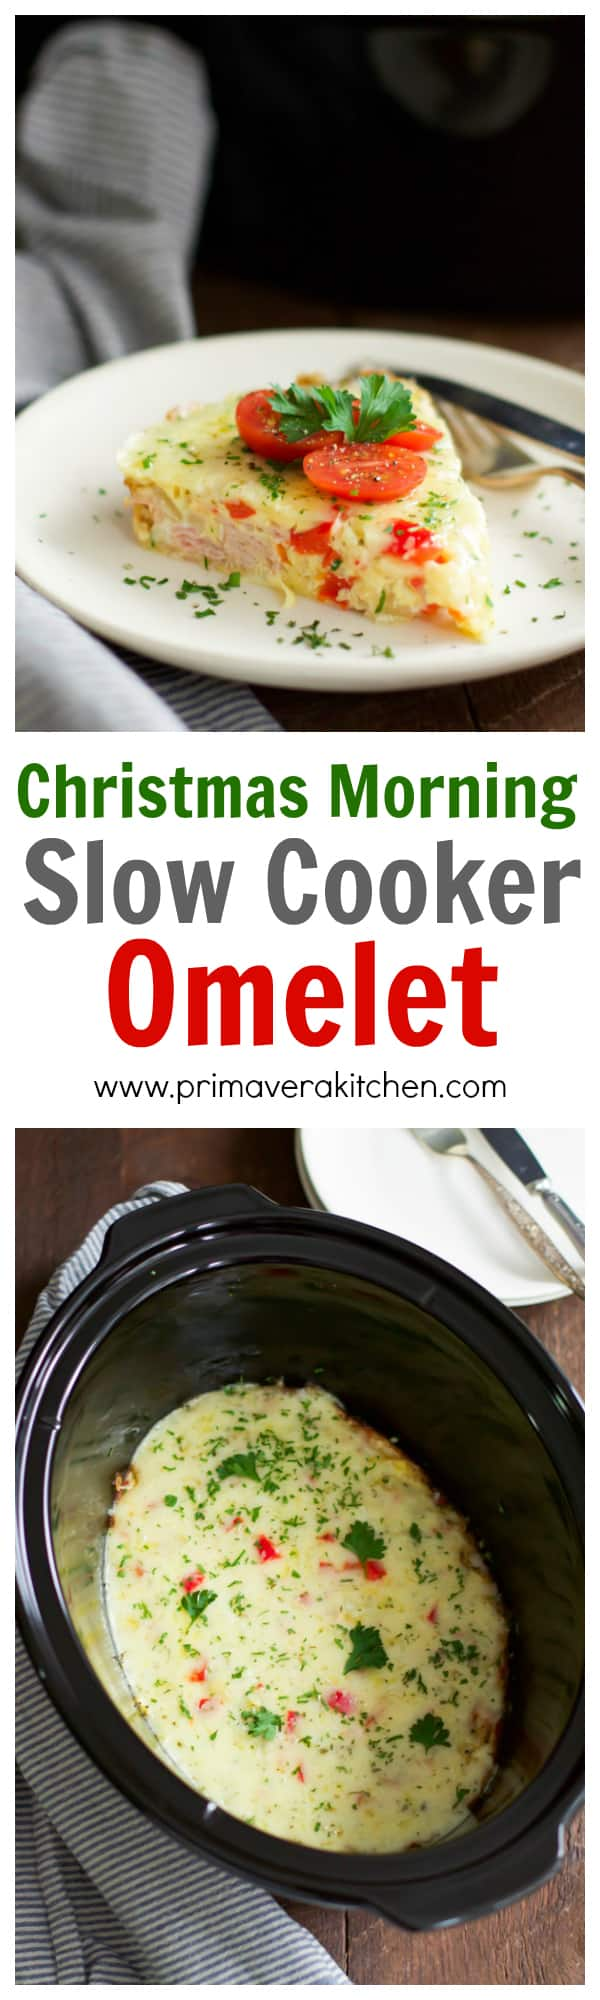 chistmas-morning-slow-cooker-omelet_- This Christmas Morning Slow Cooker Omelet is perfect for you who don't want to spend your fun Christmas morning in the kitchen. You can make this omelet ahead with eggs, almond milk, bell pepper, onions, ham and cheese